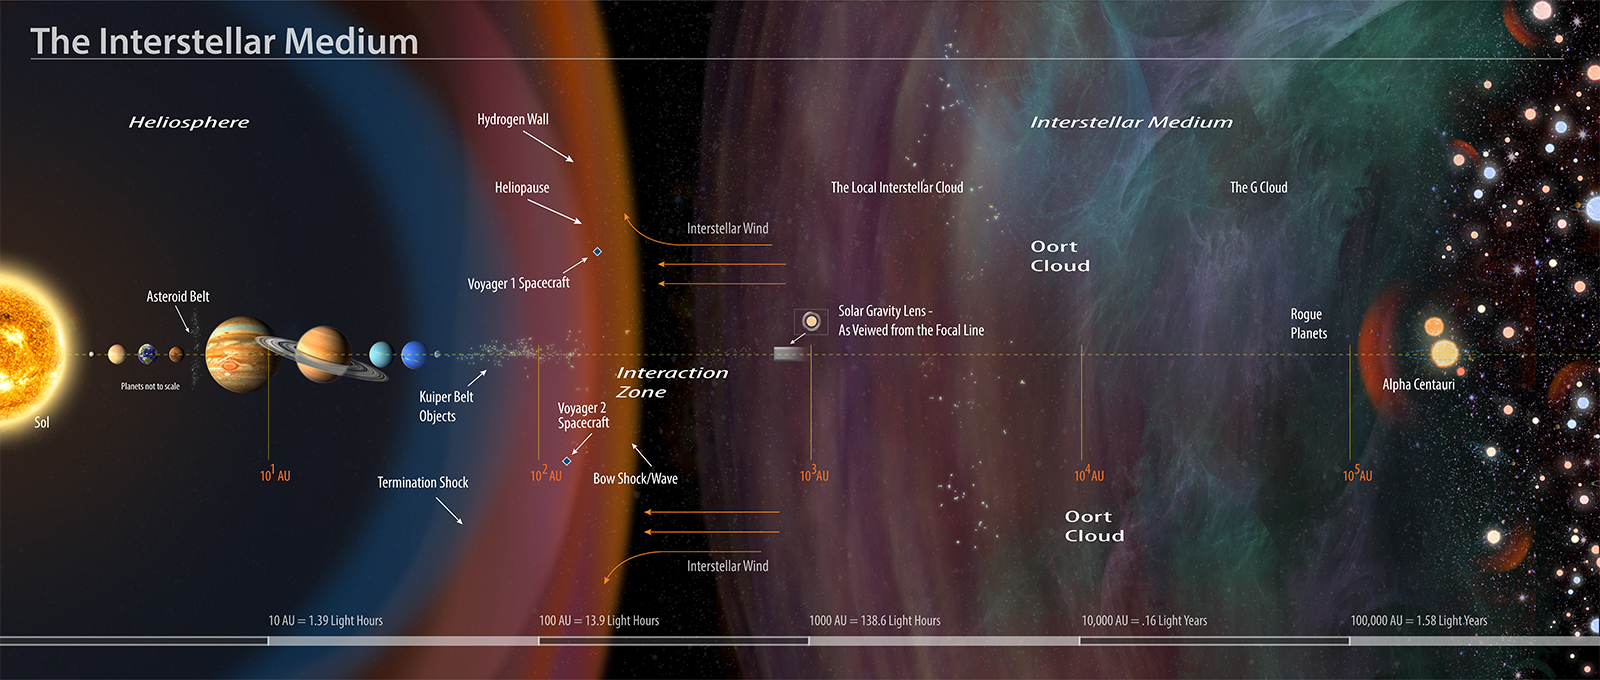 Interstellar medium annotated